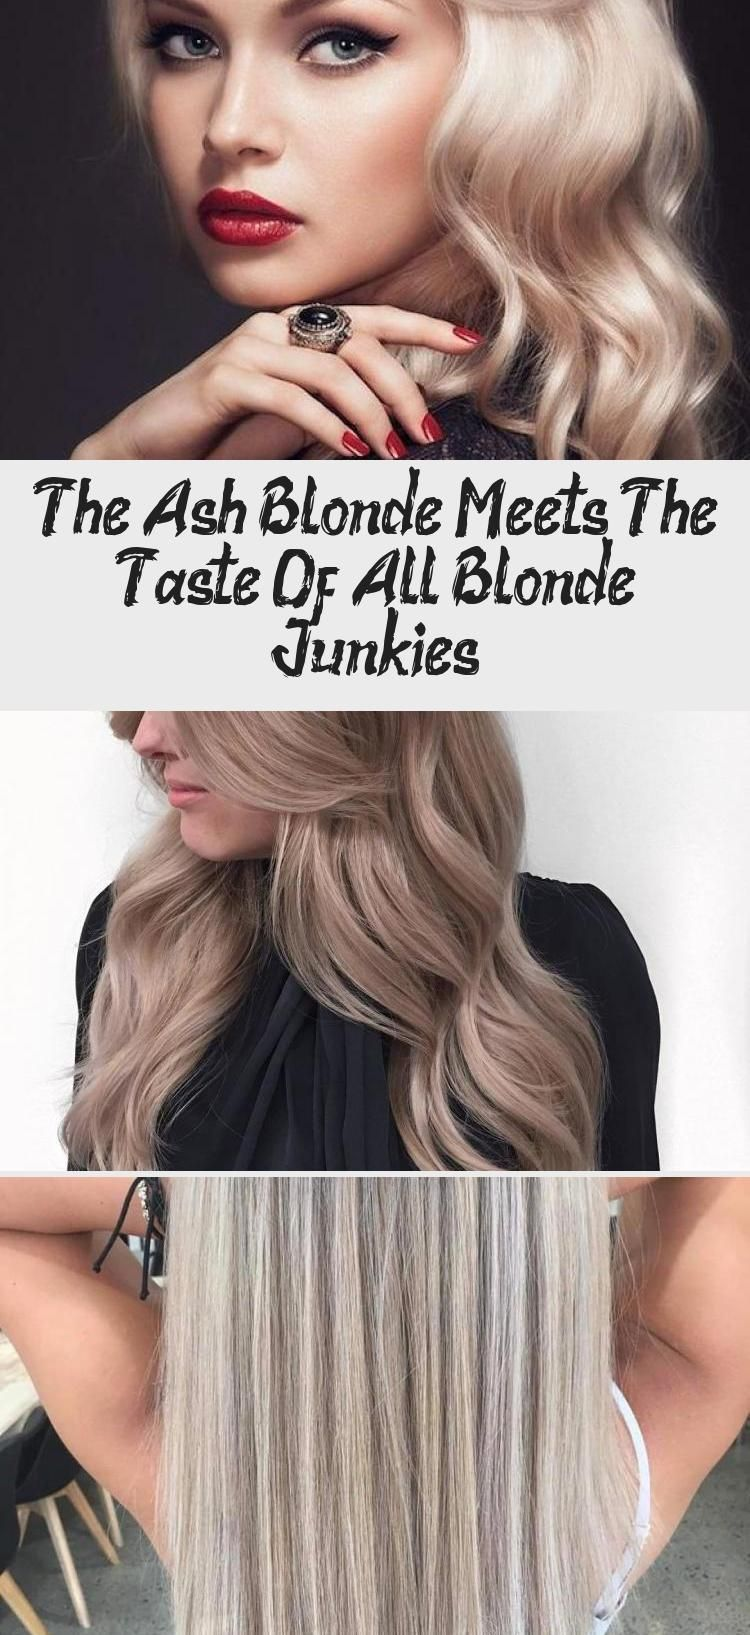 The Ash Blonde Meets The Taste Of All Blonde Junkies #naturalashblonde The ash blonde meets the taste of all blonde junkies #aschblond #hairstyles #ombre #lyrics #hair #balayage #darkblonde #blondebalayage #haircolor #blondeombre #balayagehairRubio #Reversebalayagehair #balayagehairPink #balayagehairShort #balayagehairRed #naturalashblonde